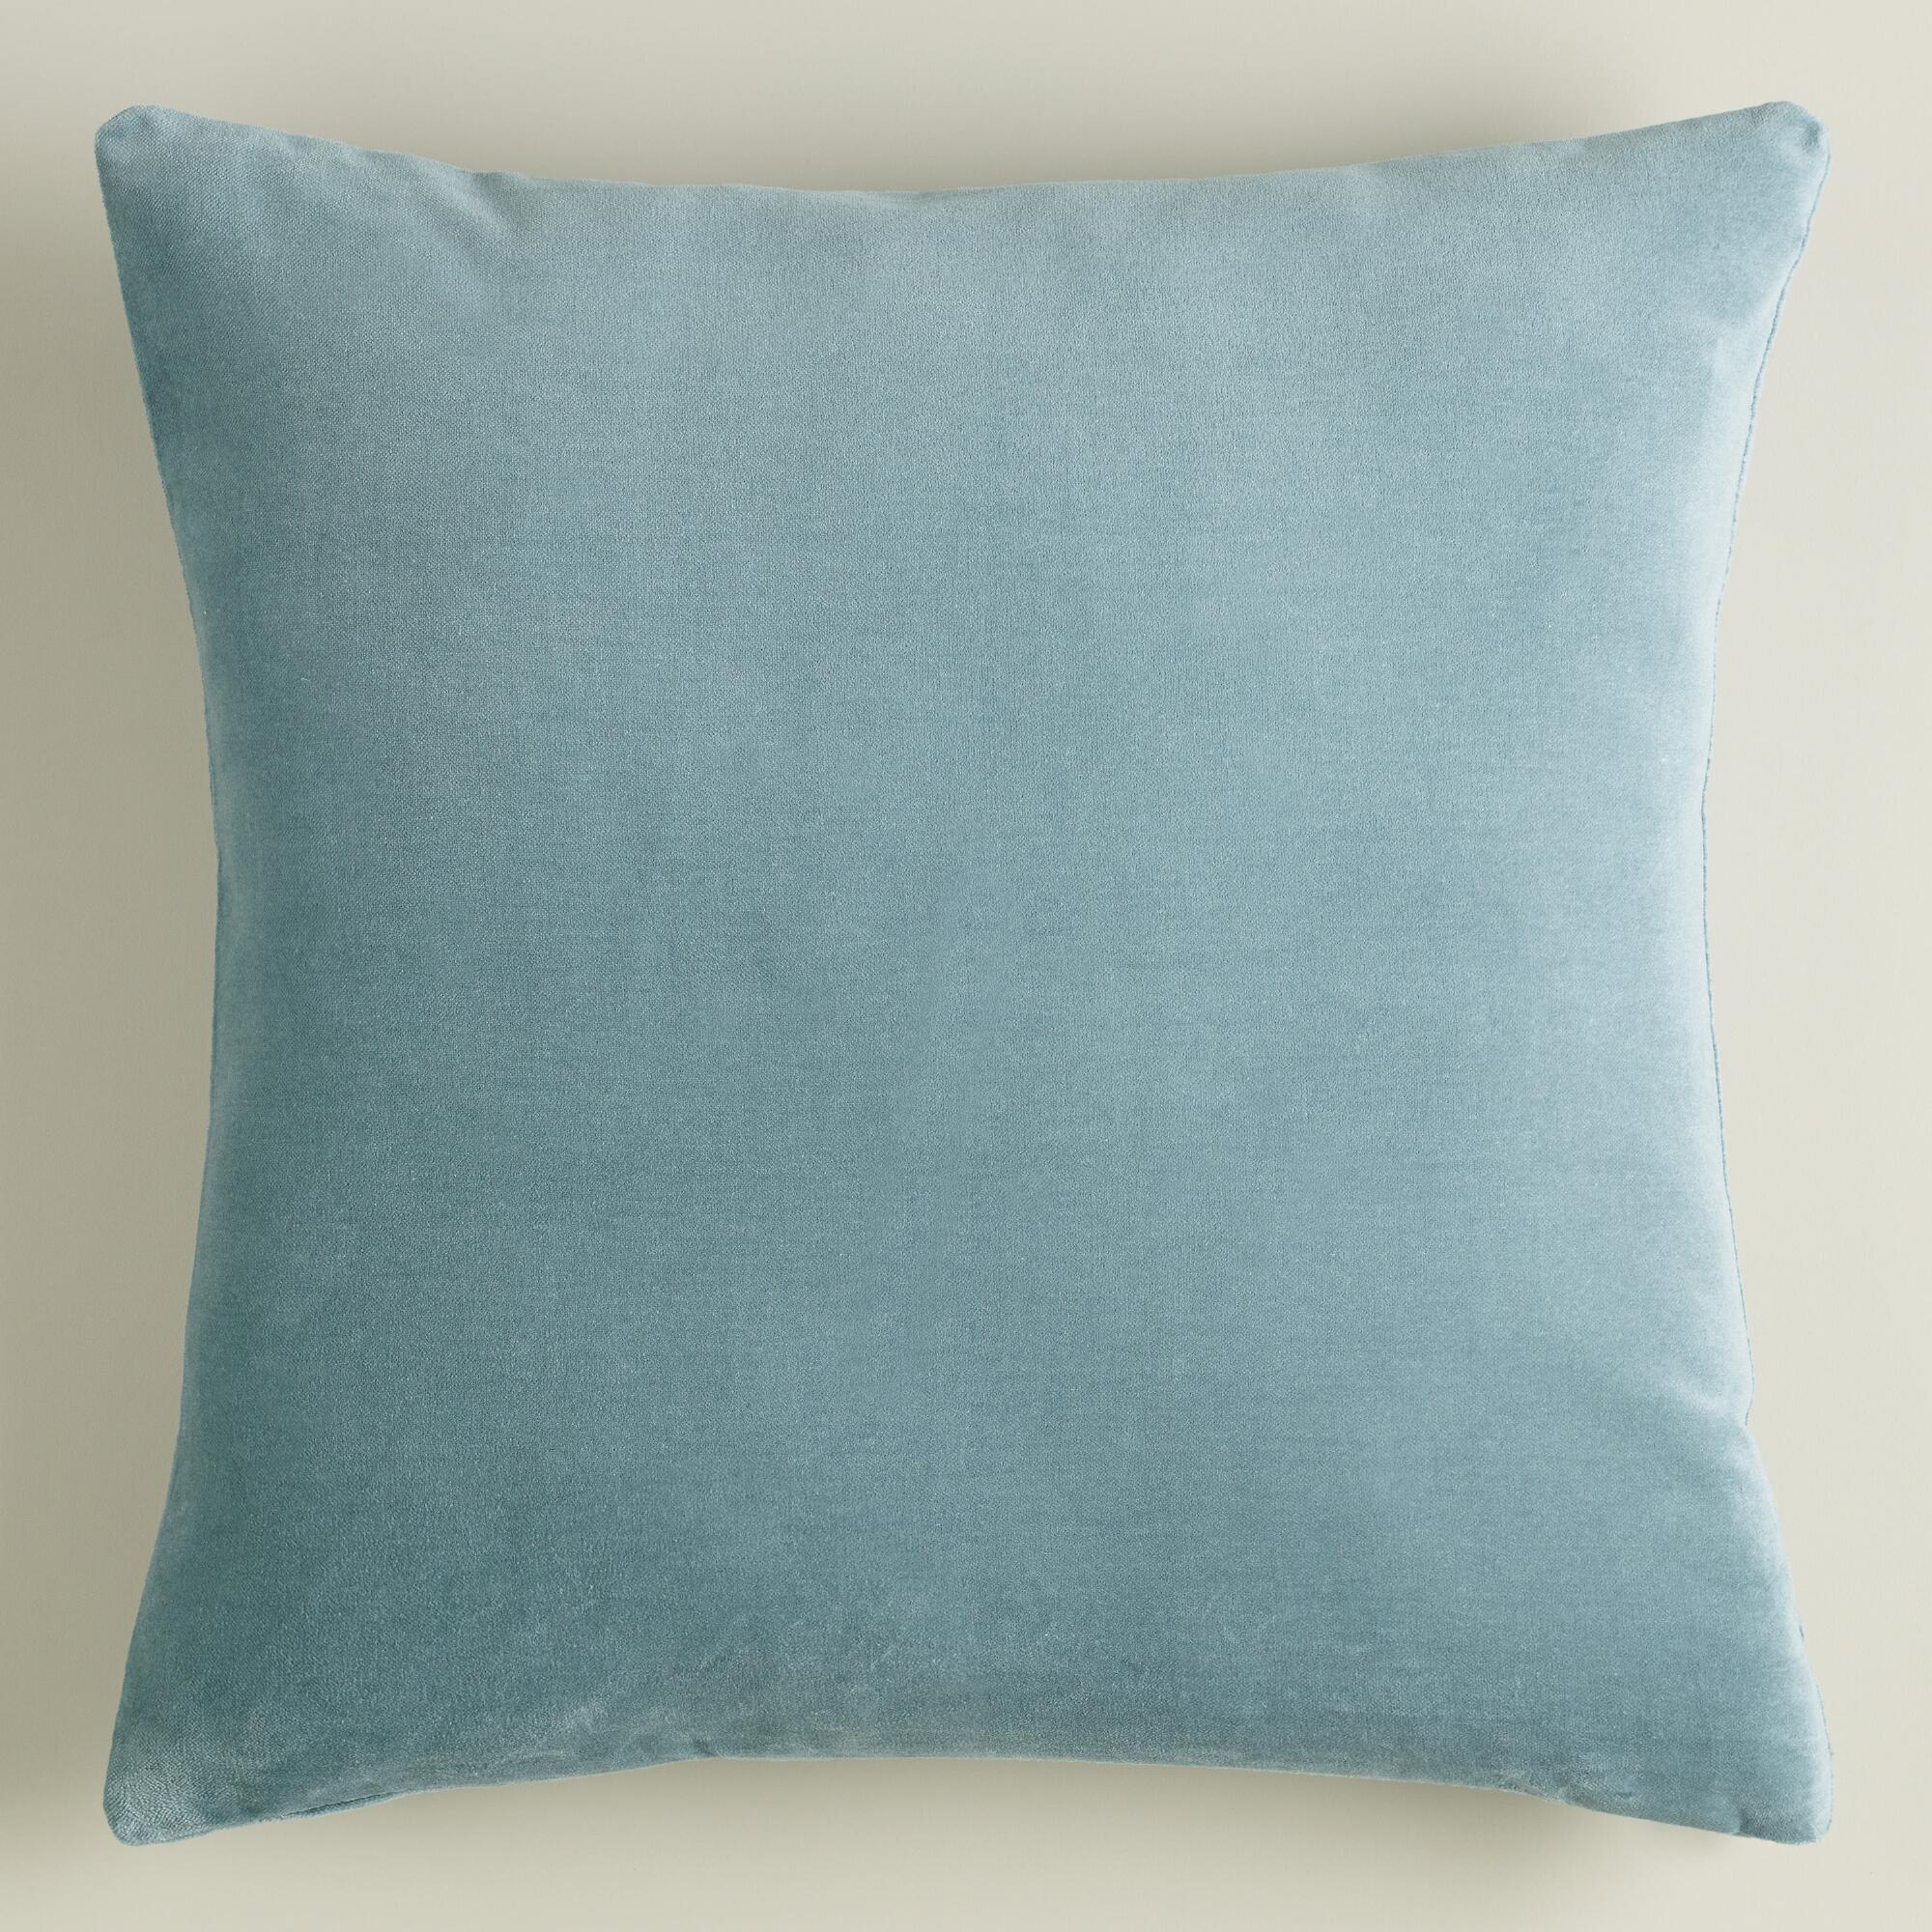 Throw Pillows Velvet : Steel Blue Velvet Throw Pillow World Market